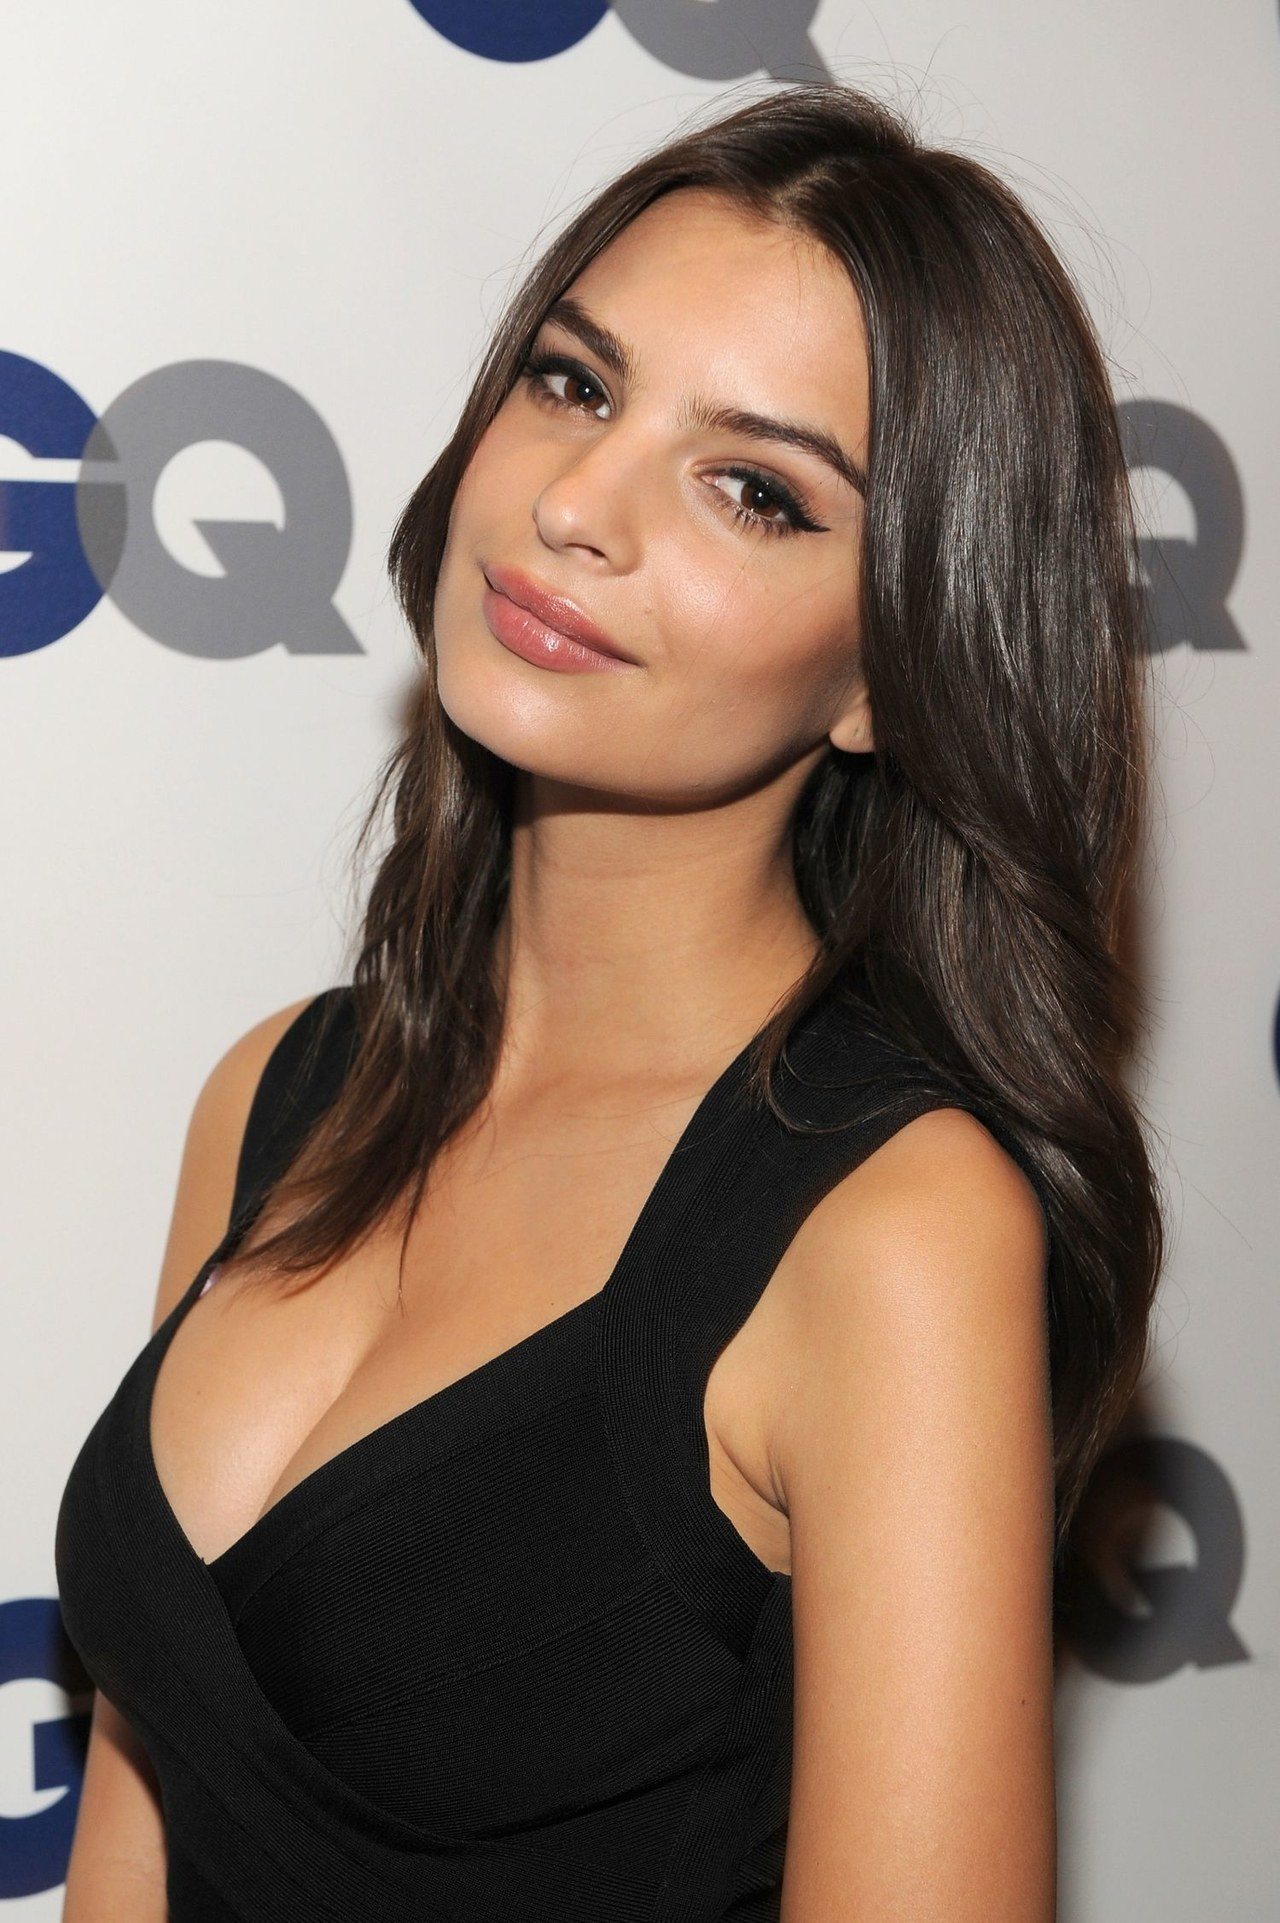 beauty-2013-11-emily-ratajkowski-blurred-lines-emily-main